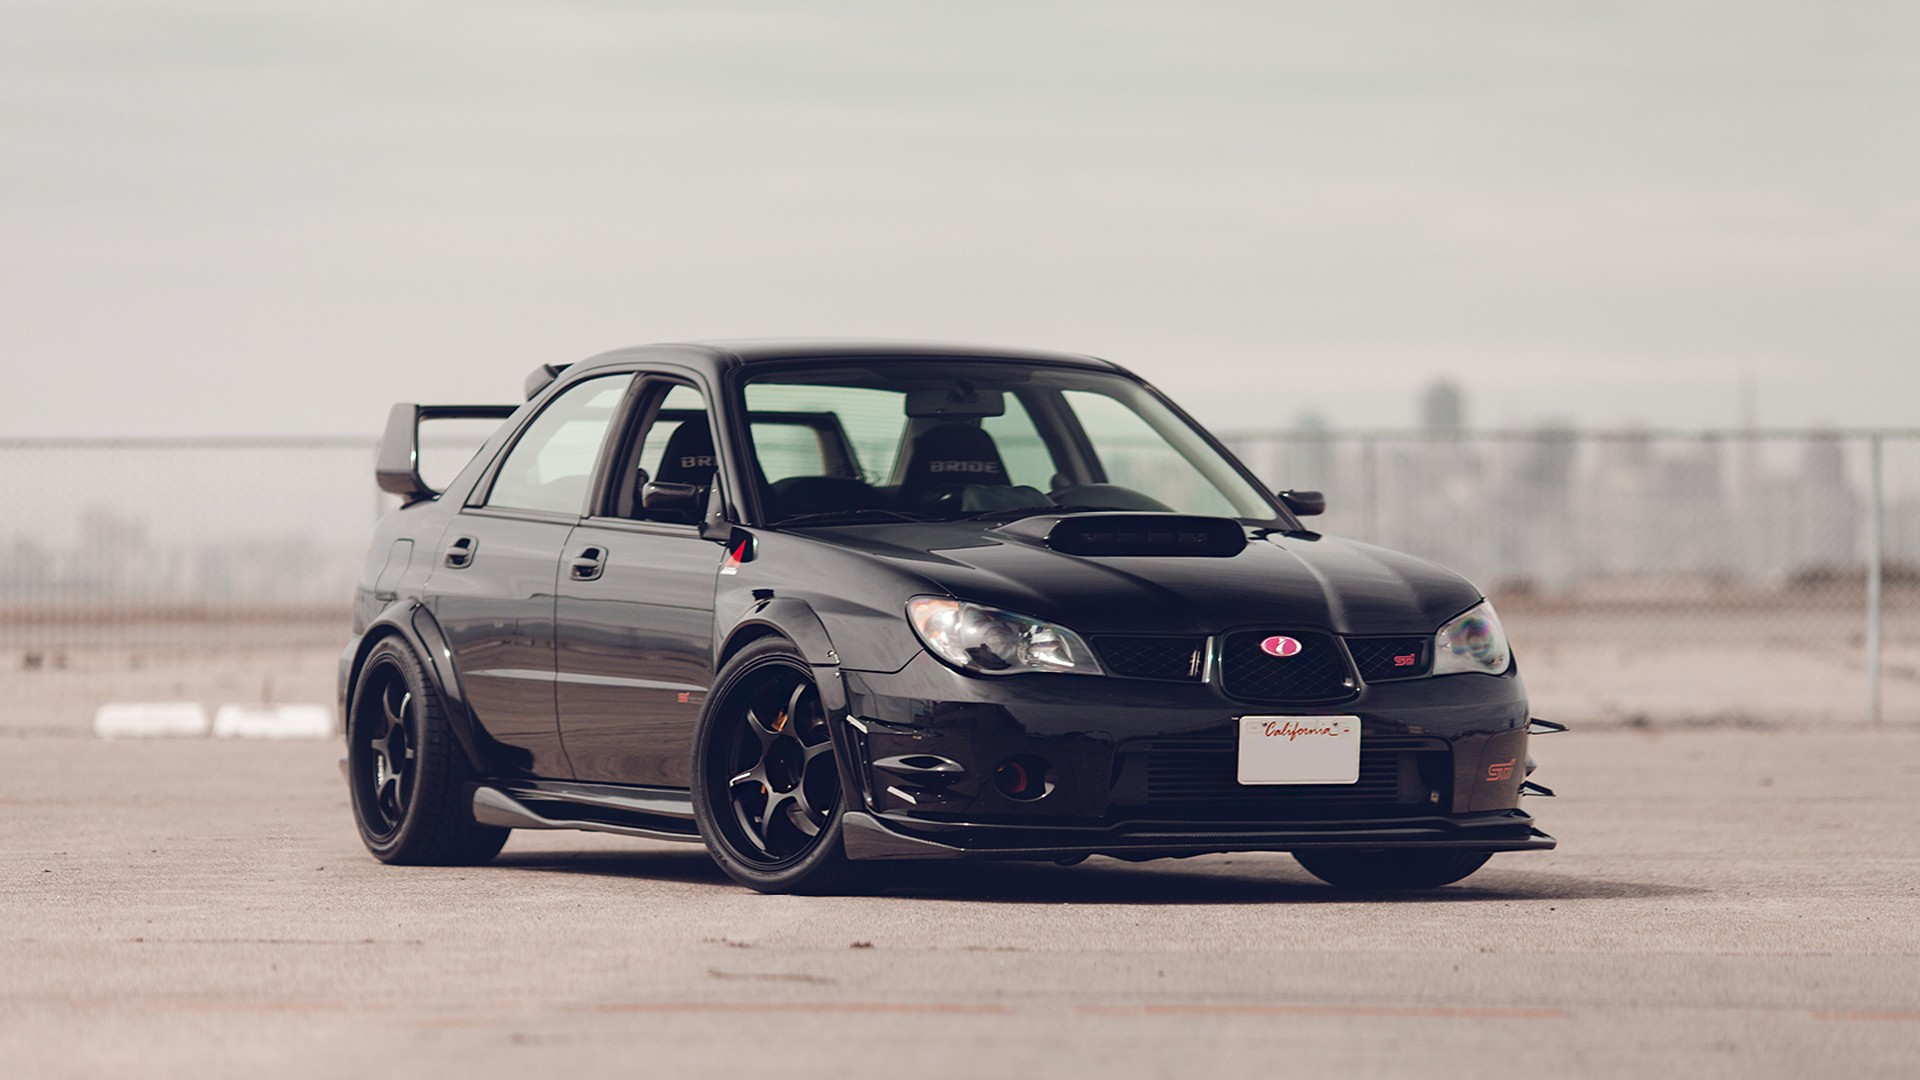 subaru wrx sti tuning wallpaper 1920x1080 74656. Black Bedroom Furniture Sets. Home Design Ideas